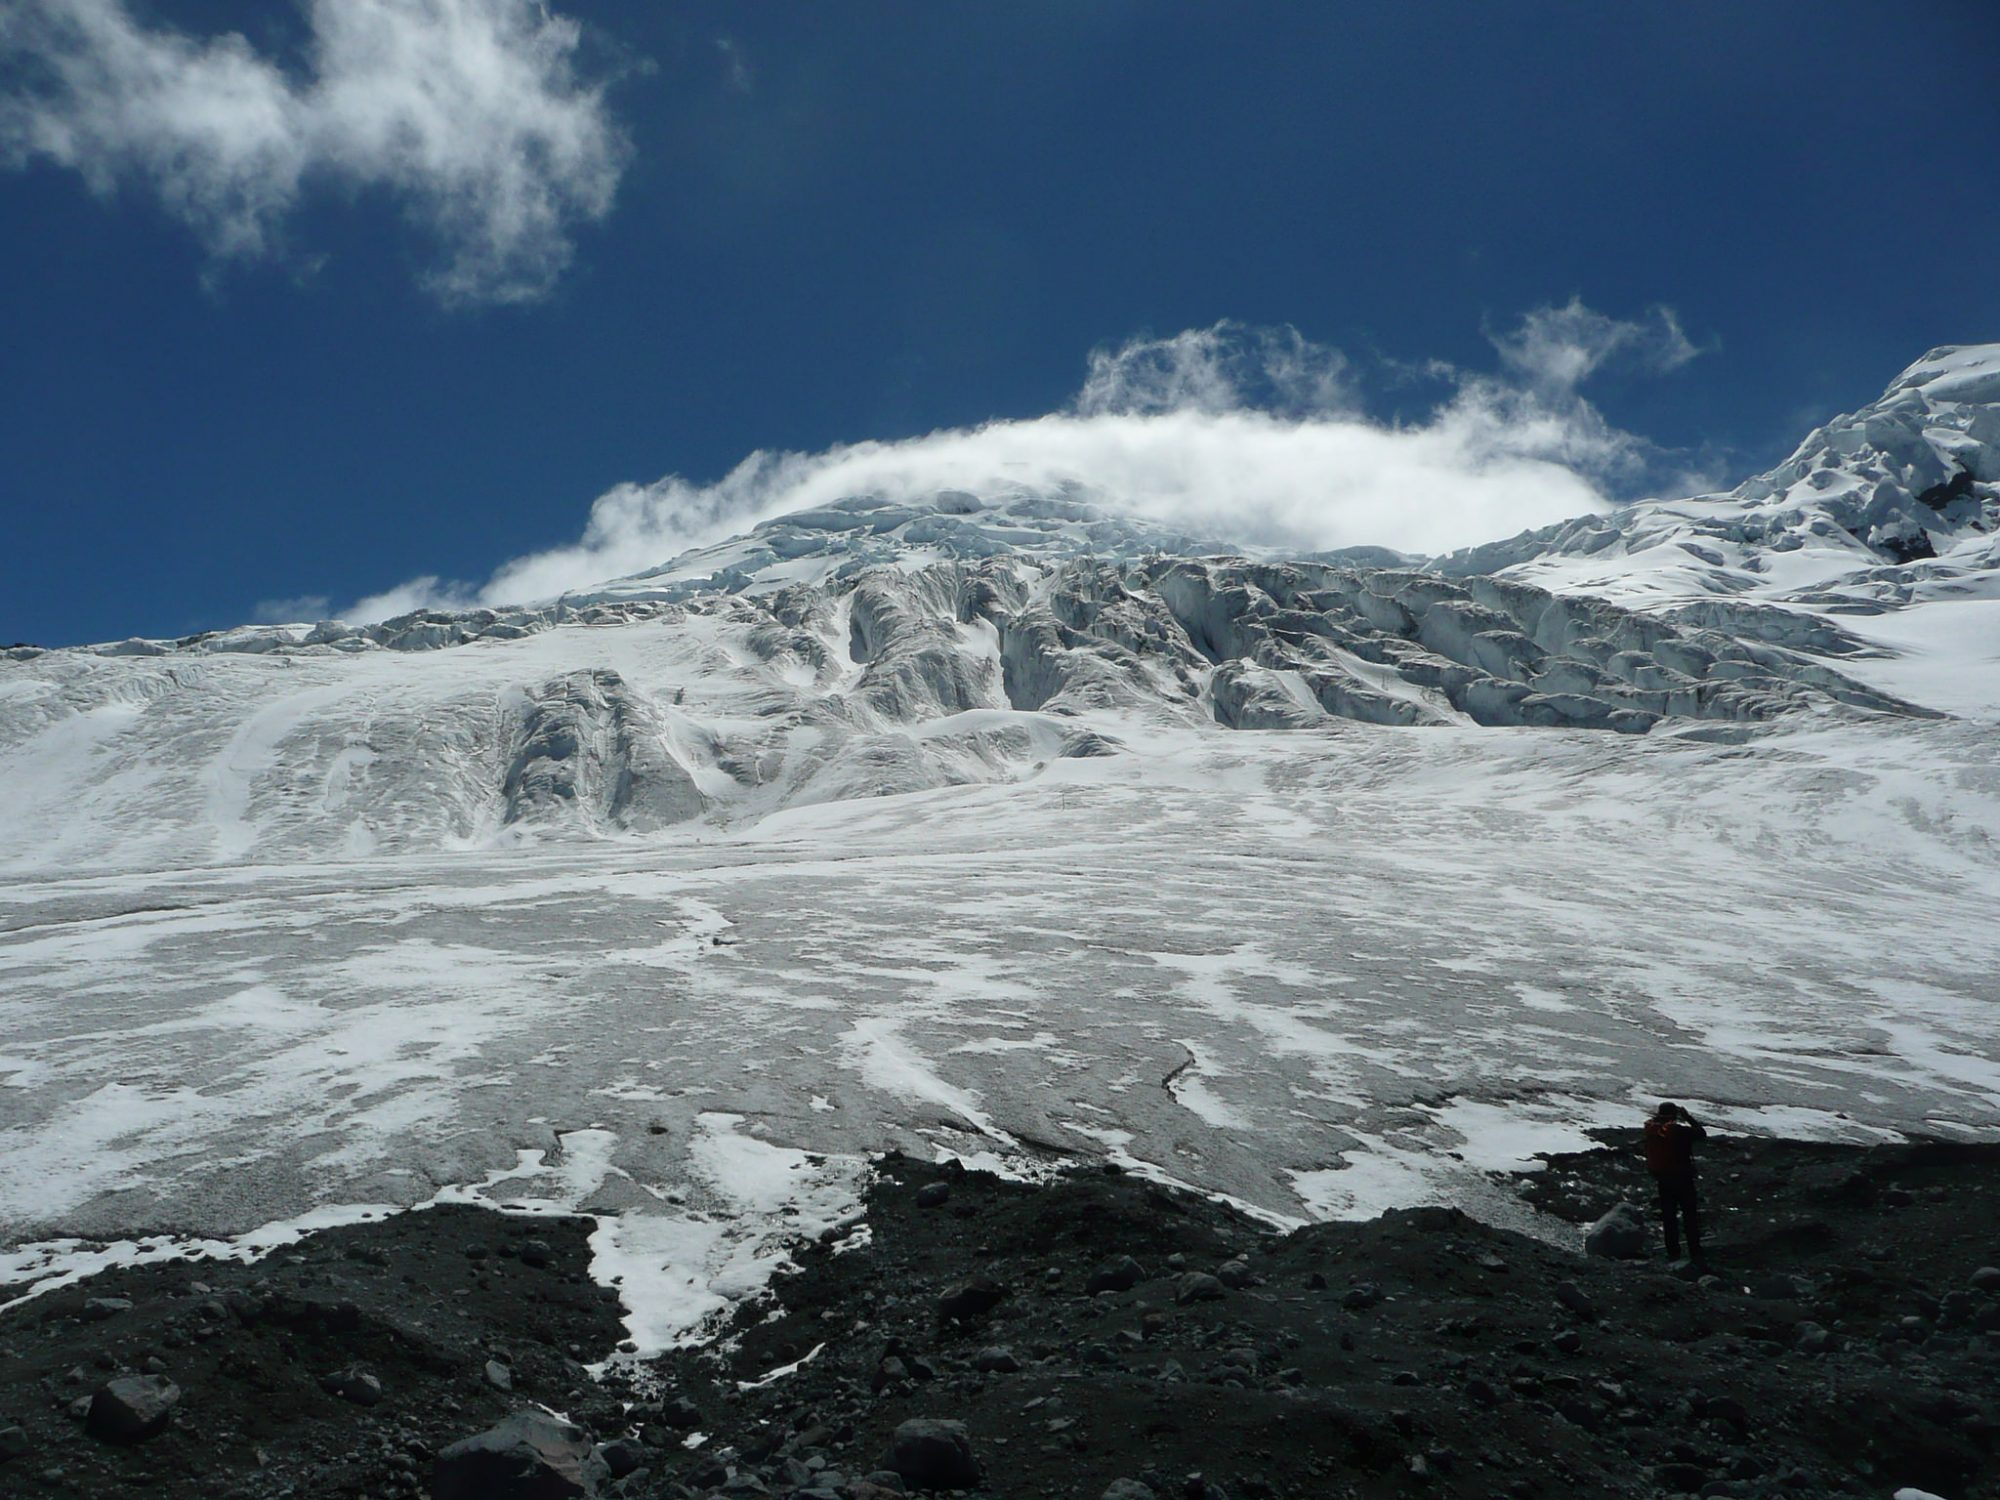 The Antisana glaciers which are experiencing retreat, according to UNEP (Source: Sid Ansari/Flickr).